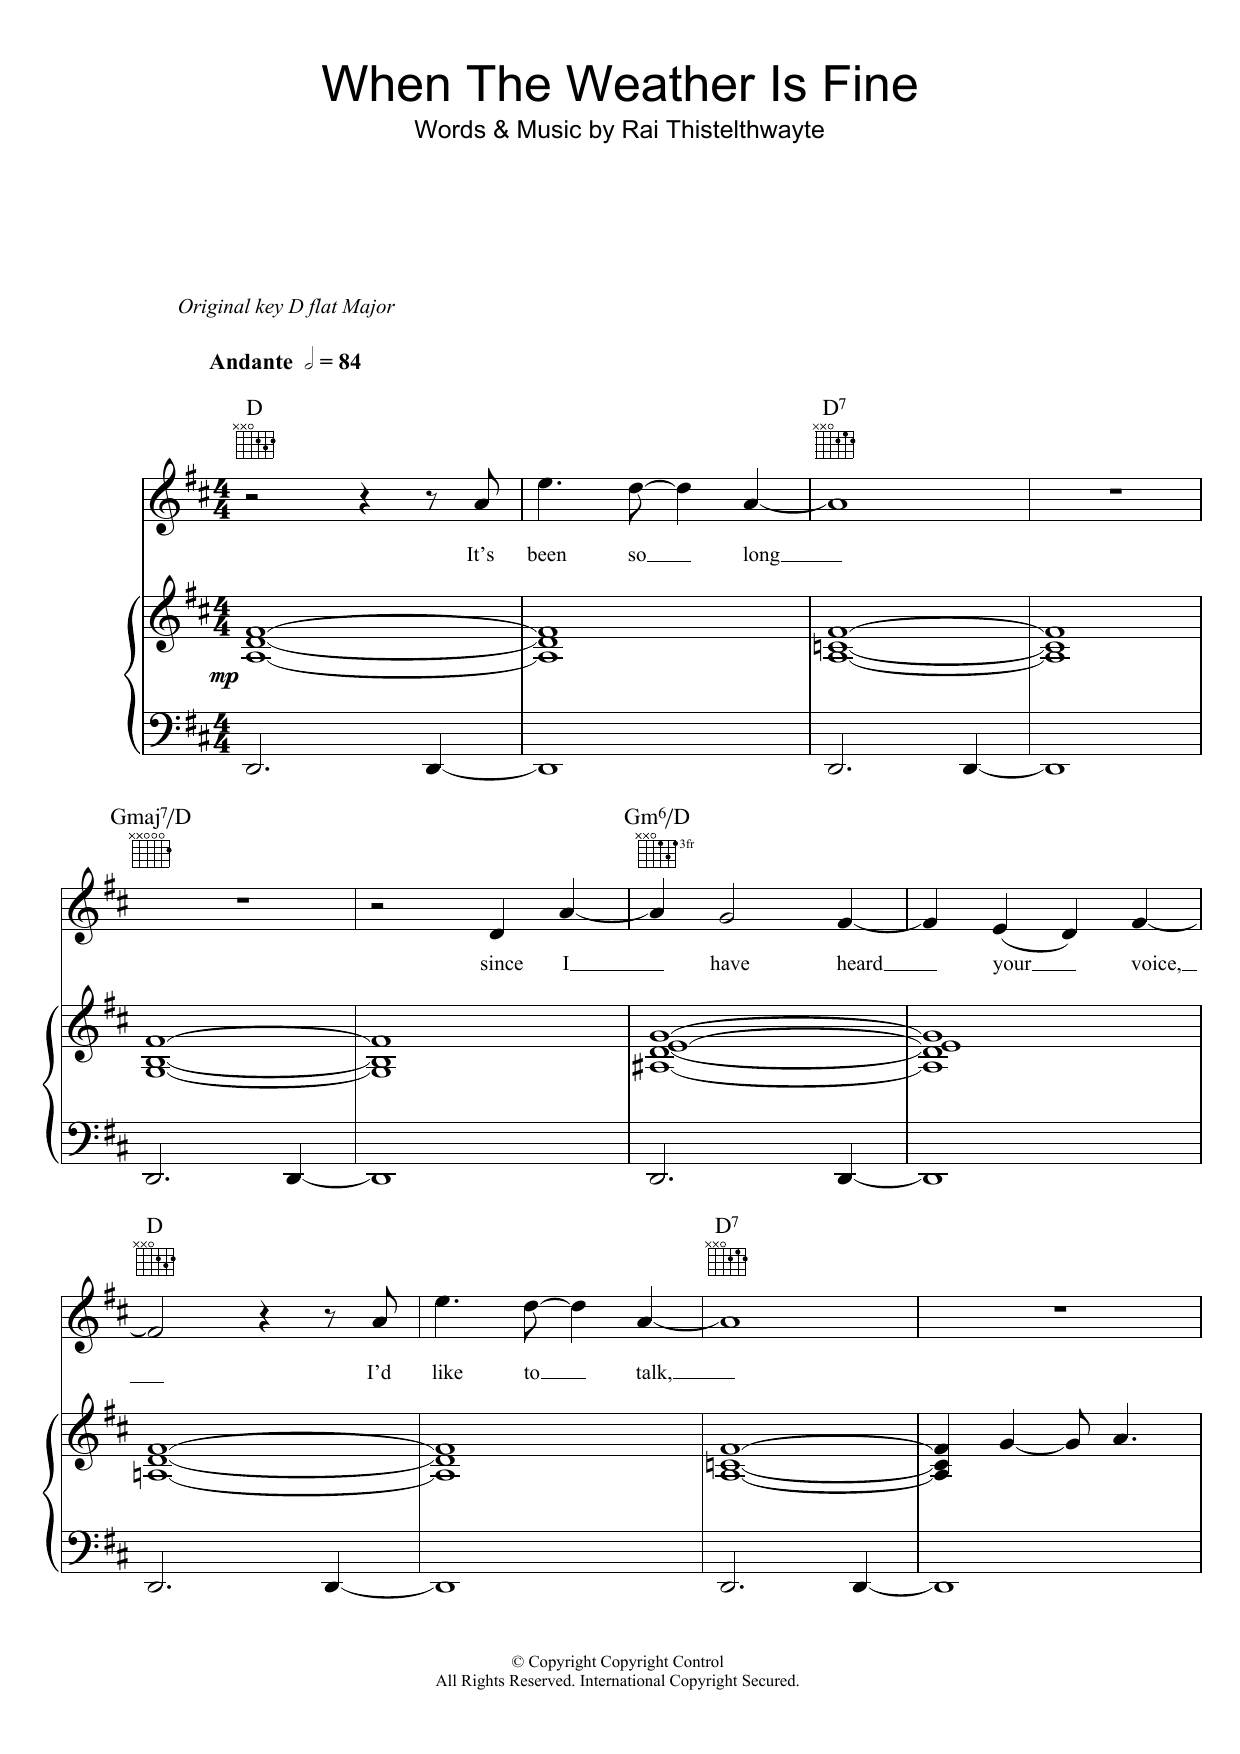 When The Weather Is Fine Sheet Music